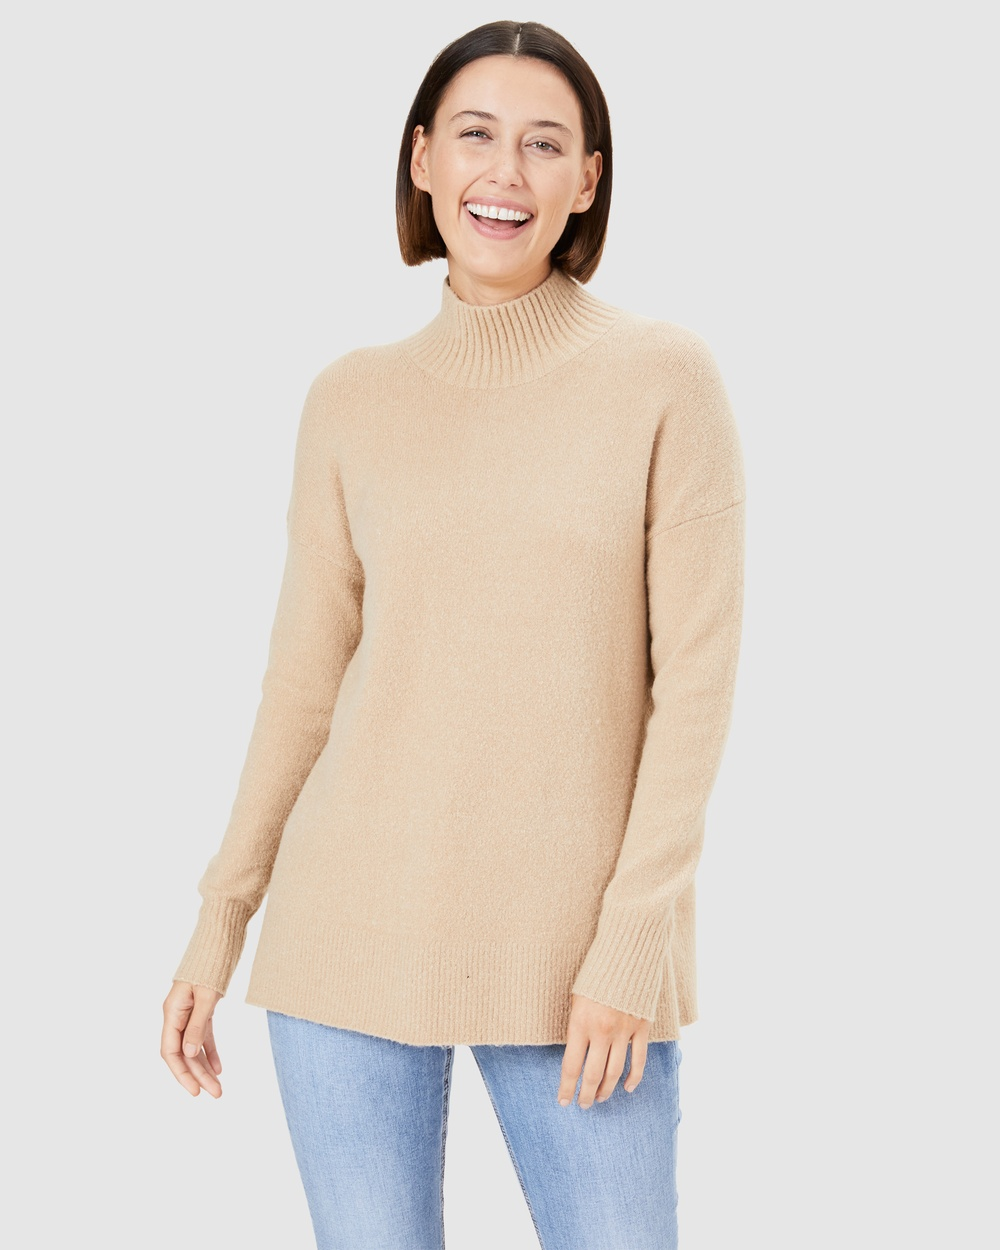 French Connection Cosy High Neck Knit Jumpers & Cardigans CAMEL Australia